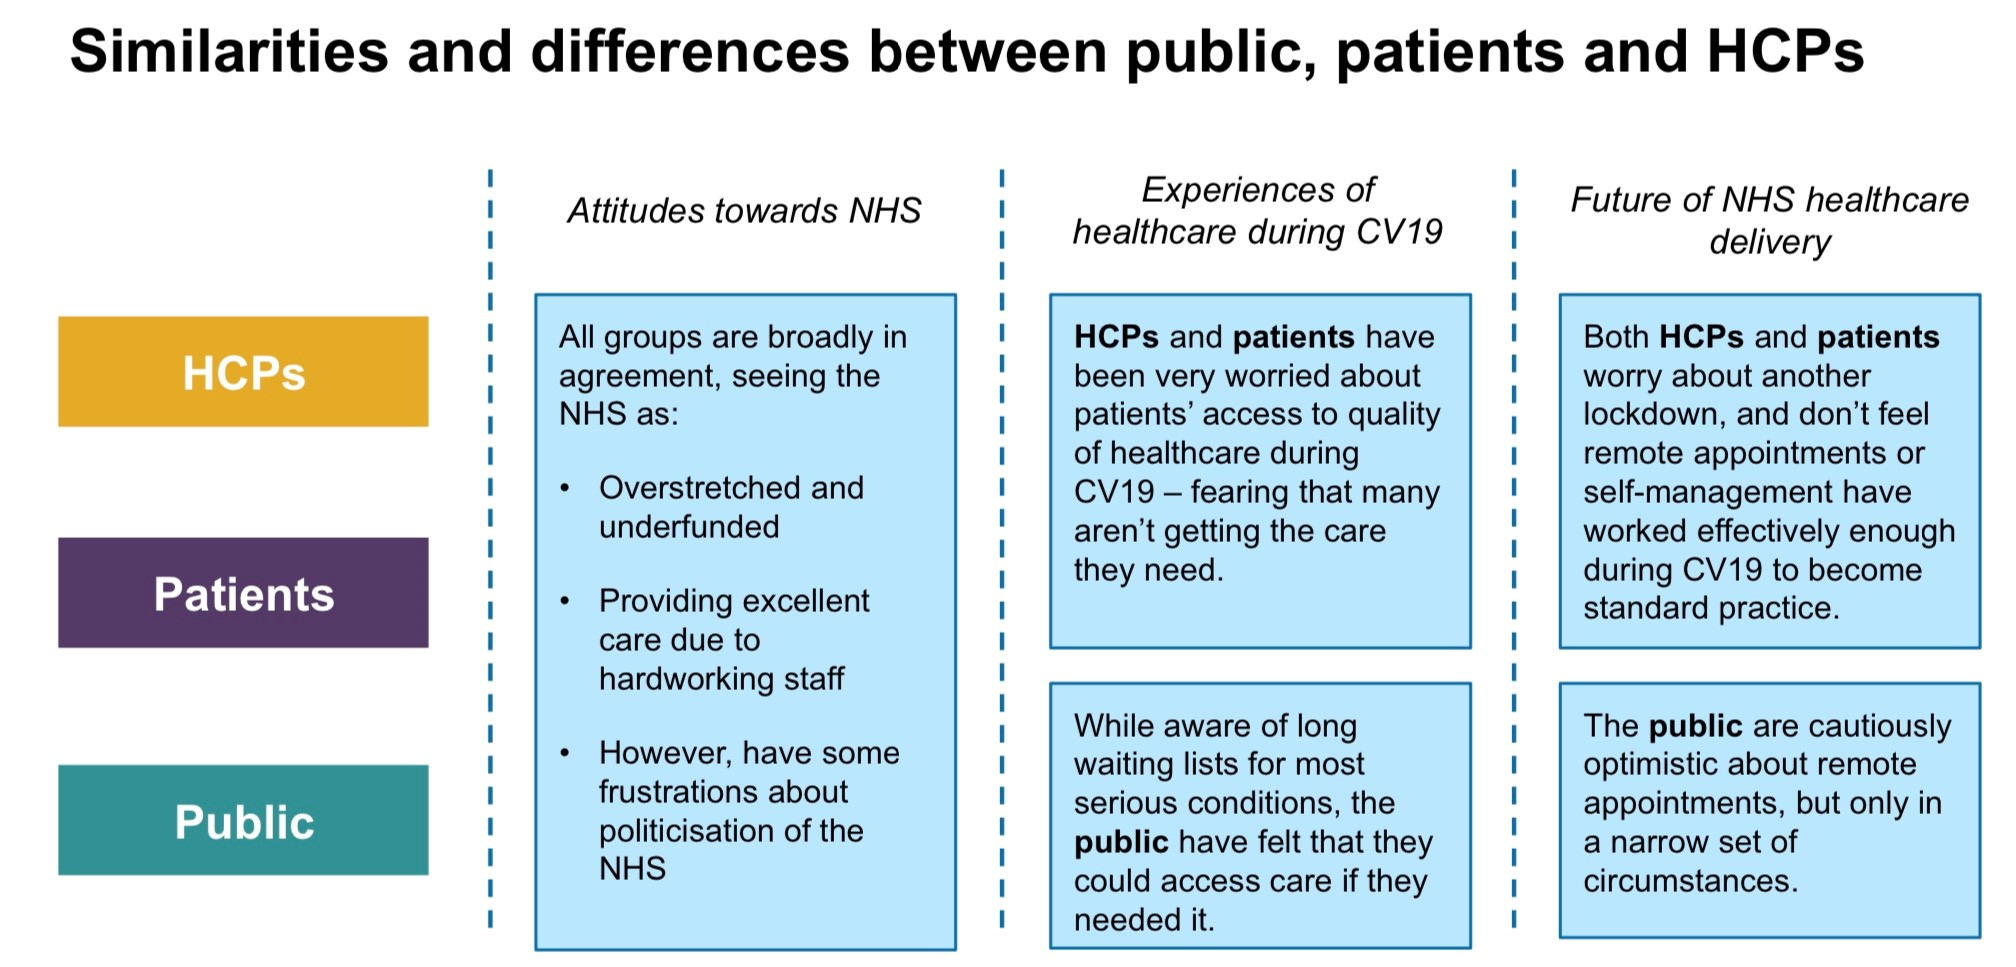 Image shows table from report, covering similarities and differences in views between public, patients and healthcare professionals.